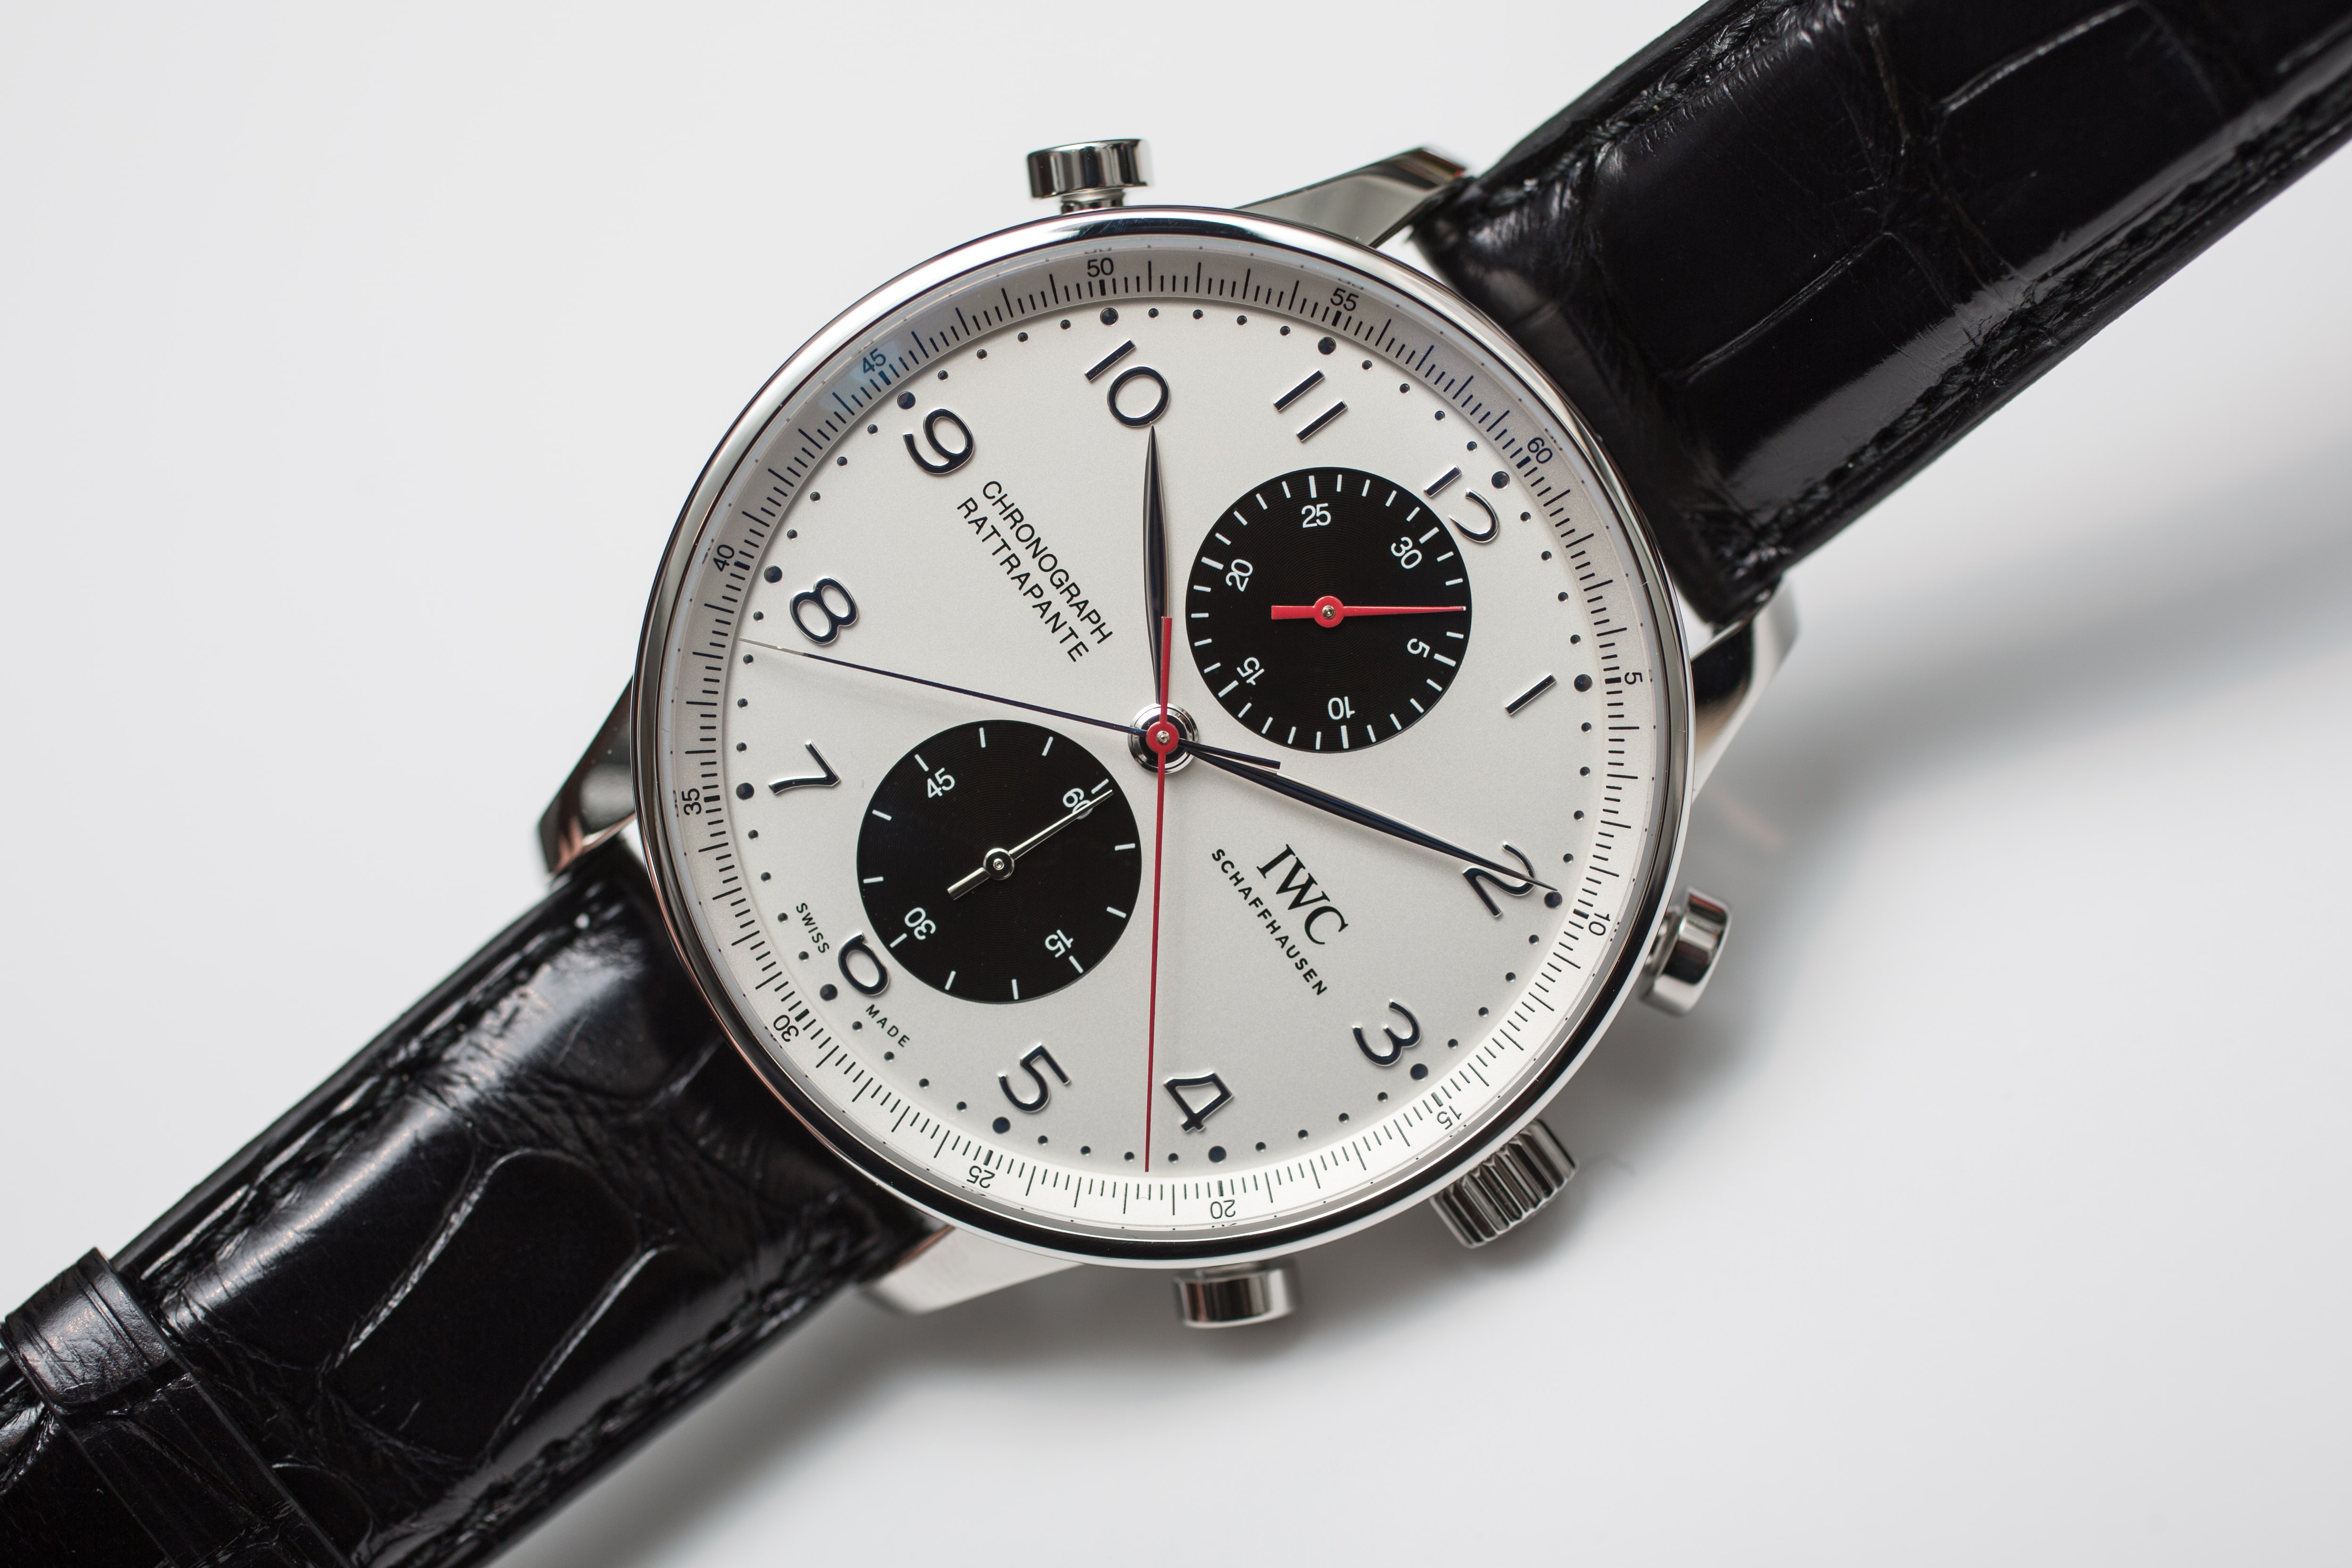 Hands-On: With The IWC Portugieser Chronograph Rattrapante Edition Boutique Canada Hands-On: With The IWC Portugieser Chronograph Rattrapante Edition Boutique Canada IWC Portugieser Chronograph Rattrapante Canada Boutique 6